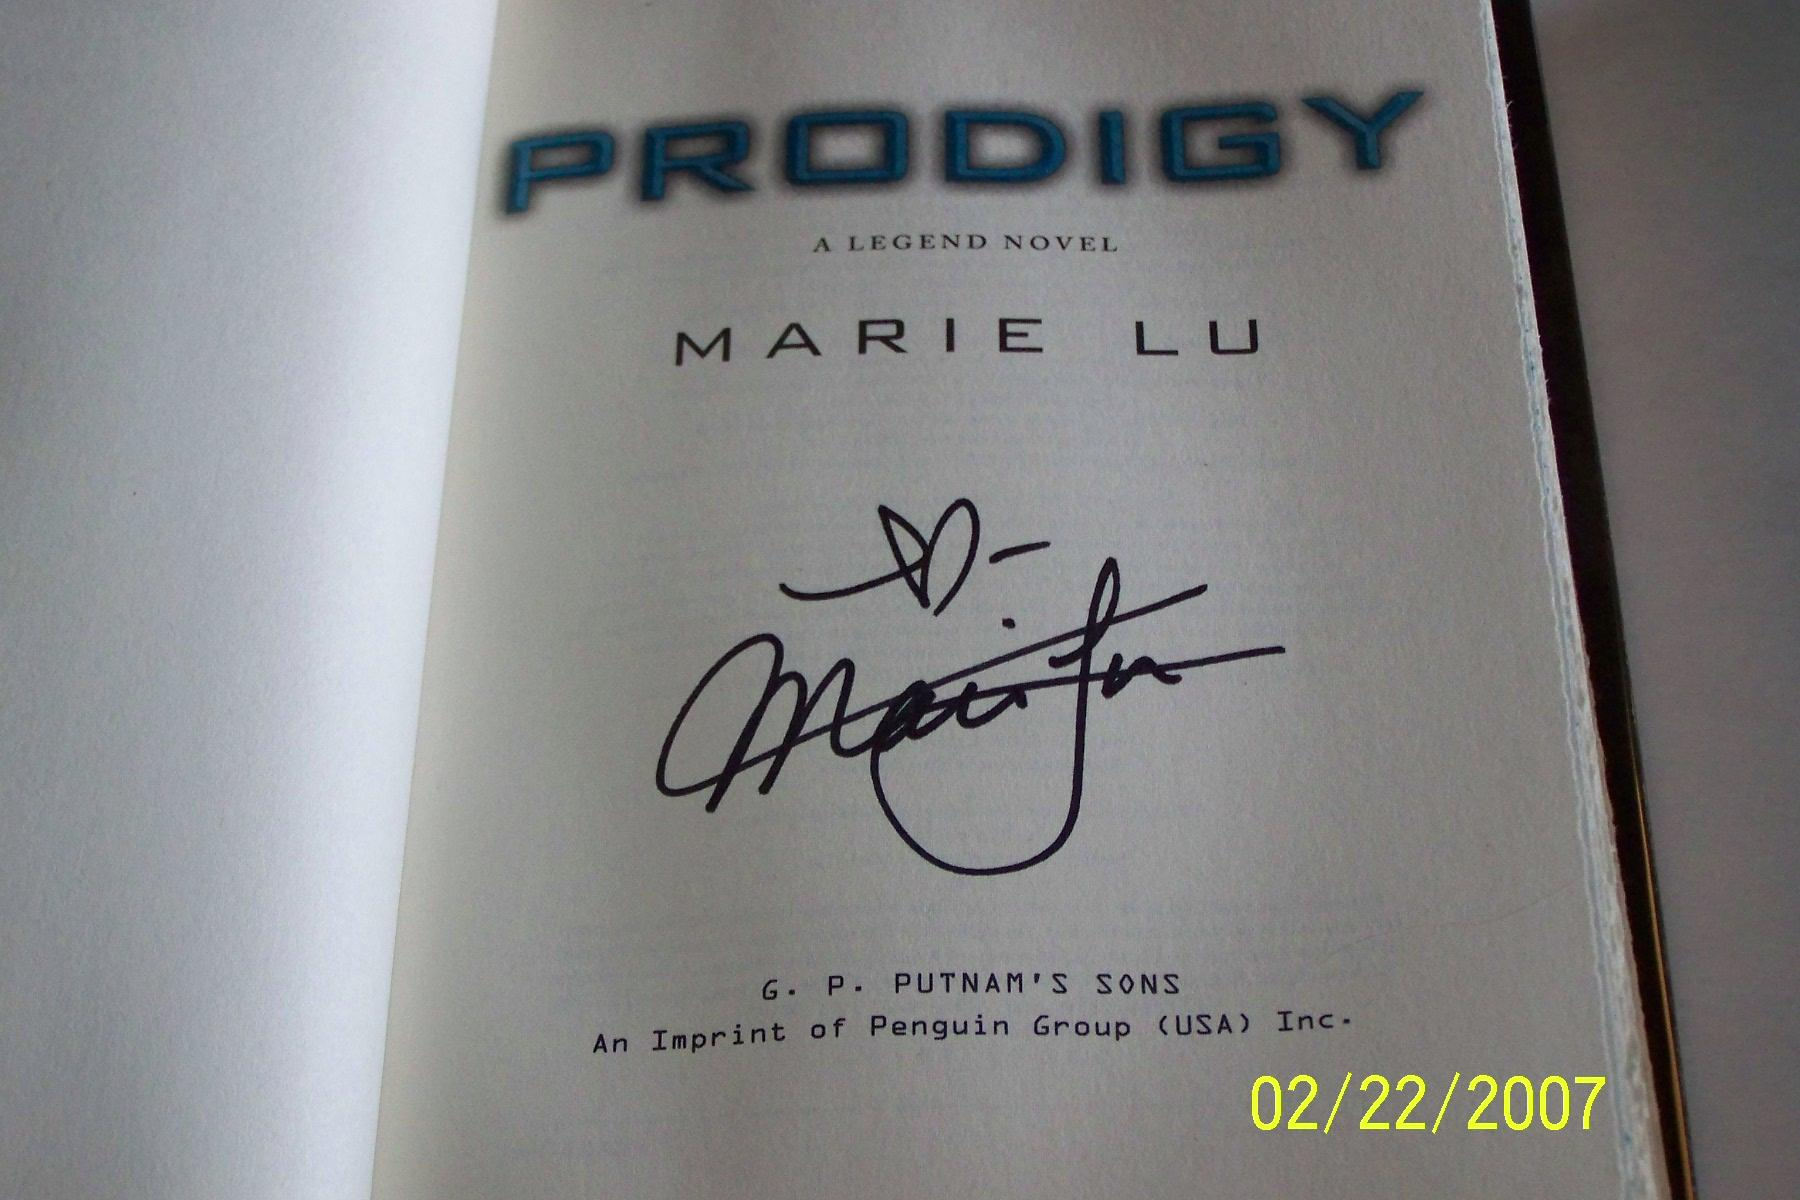 Legend prodigy and champion by marie lu g p putnam new york prodigy and champion marie lu publicscrutiny Images